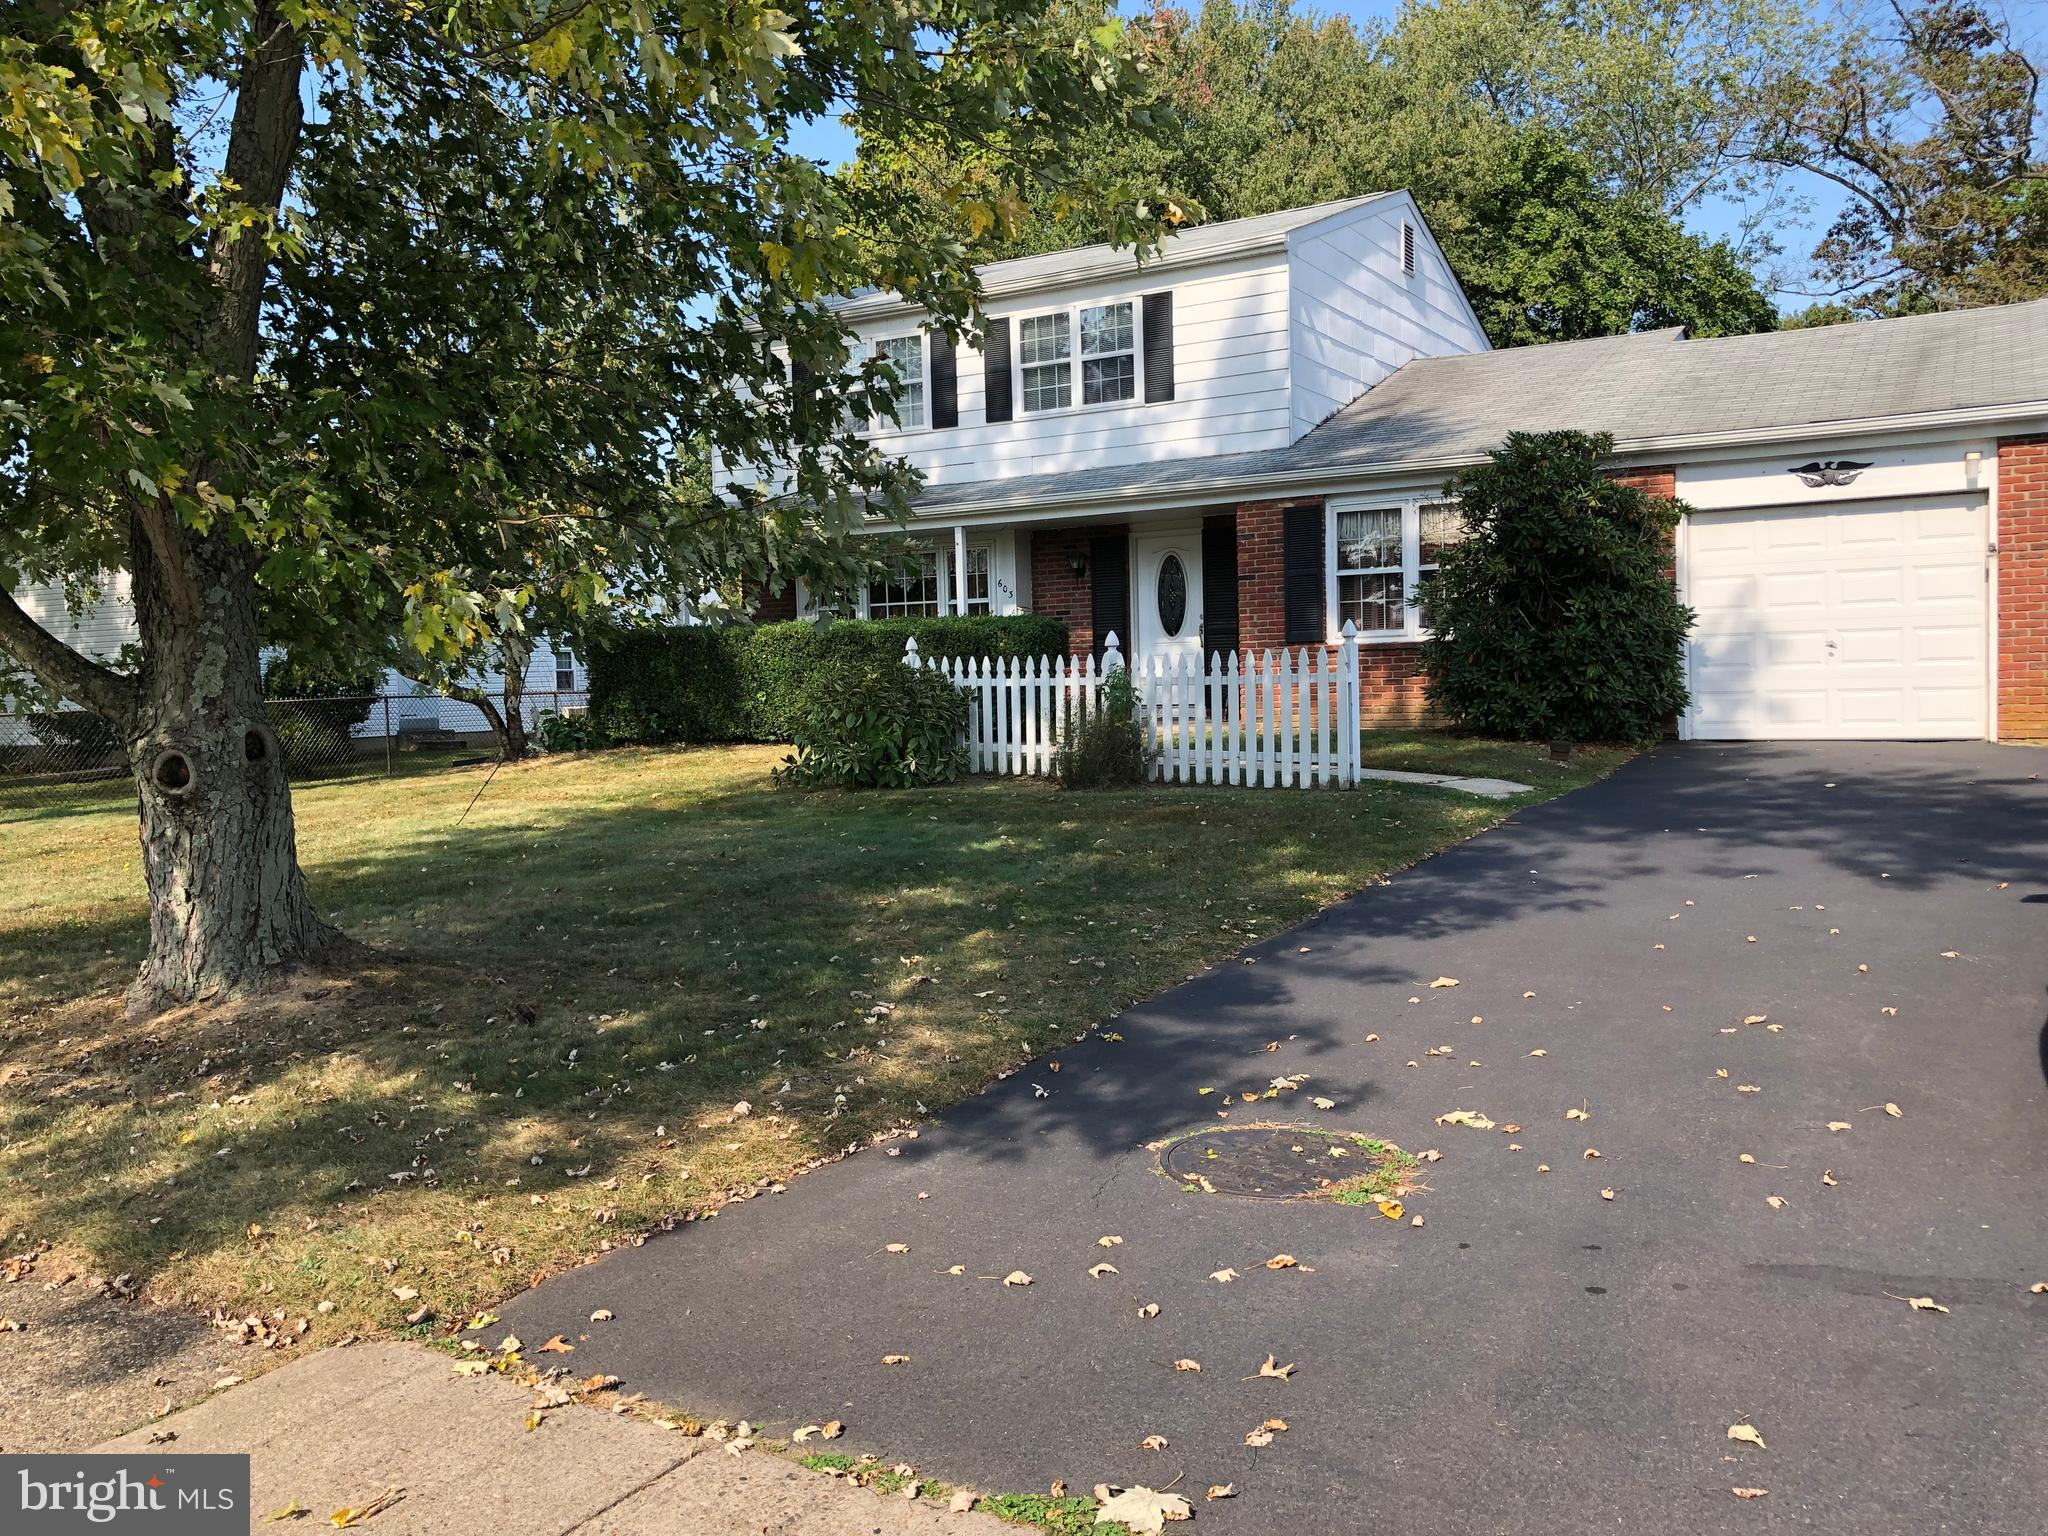 603 S OLDS BOULEVARD, FAIRLESS HILLS, PA 19030